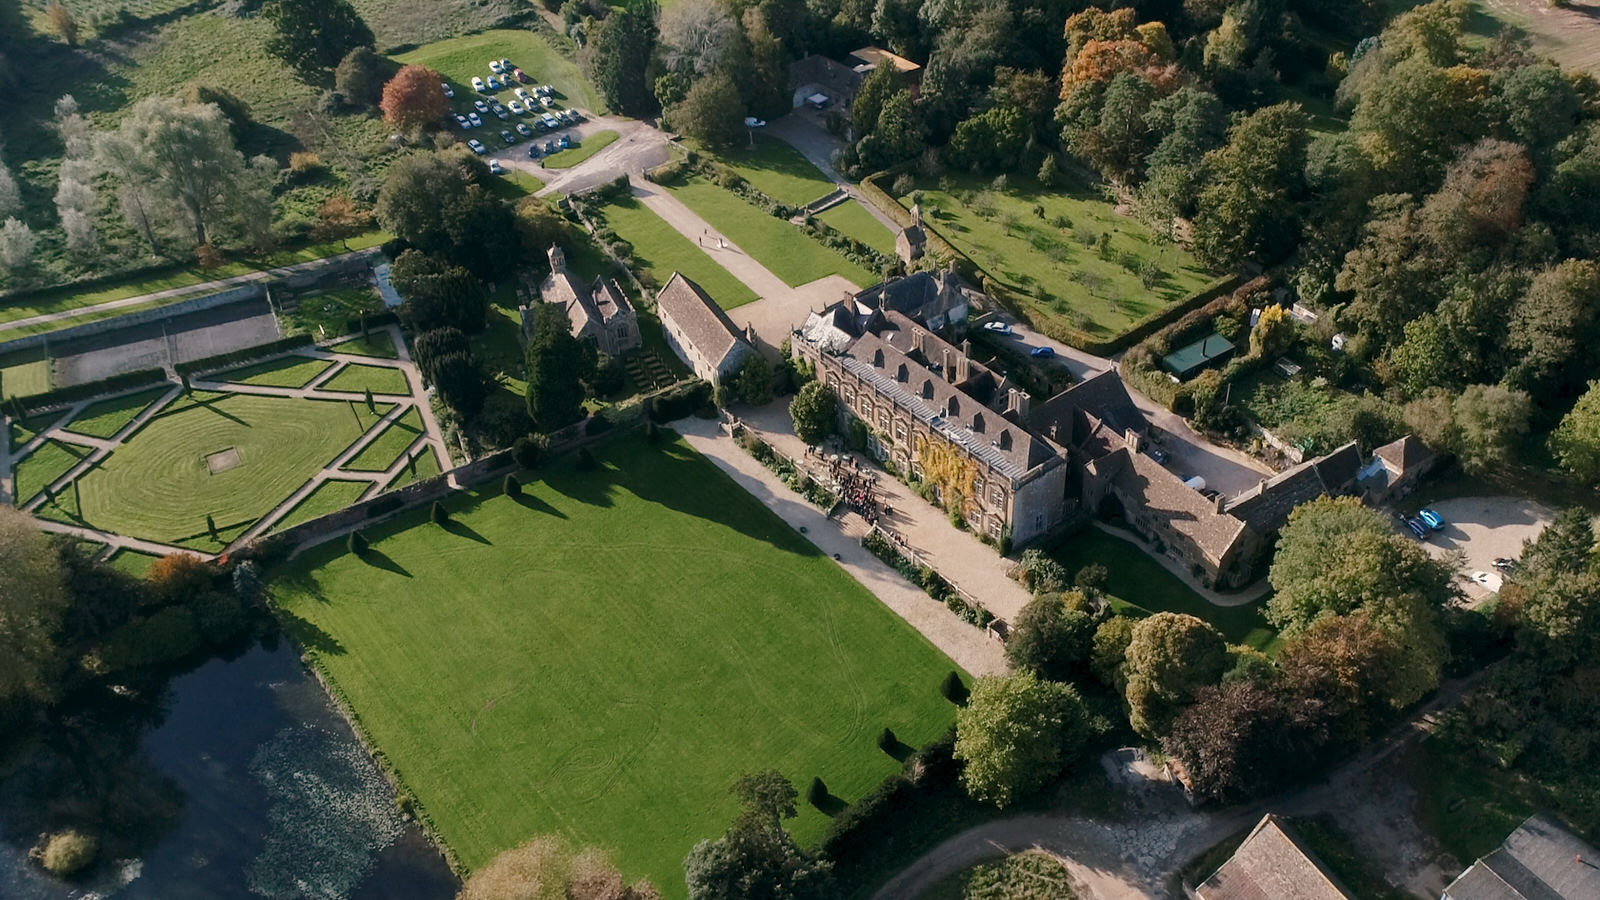 aerial photograph of Brympton House in Somerset